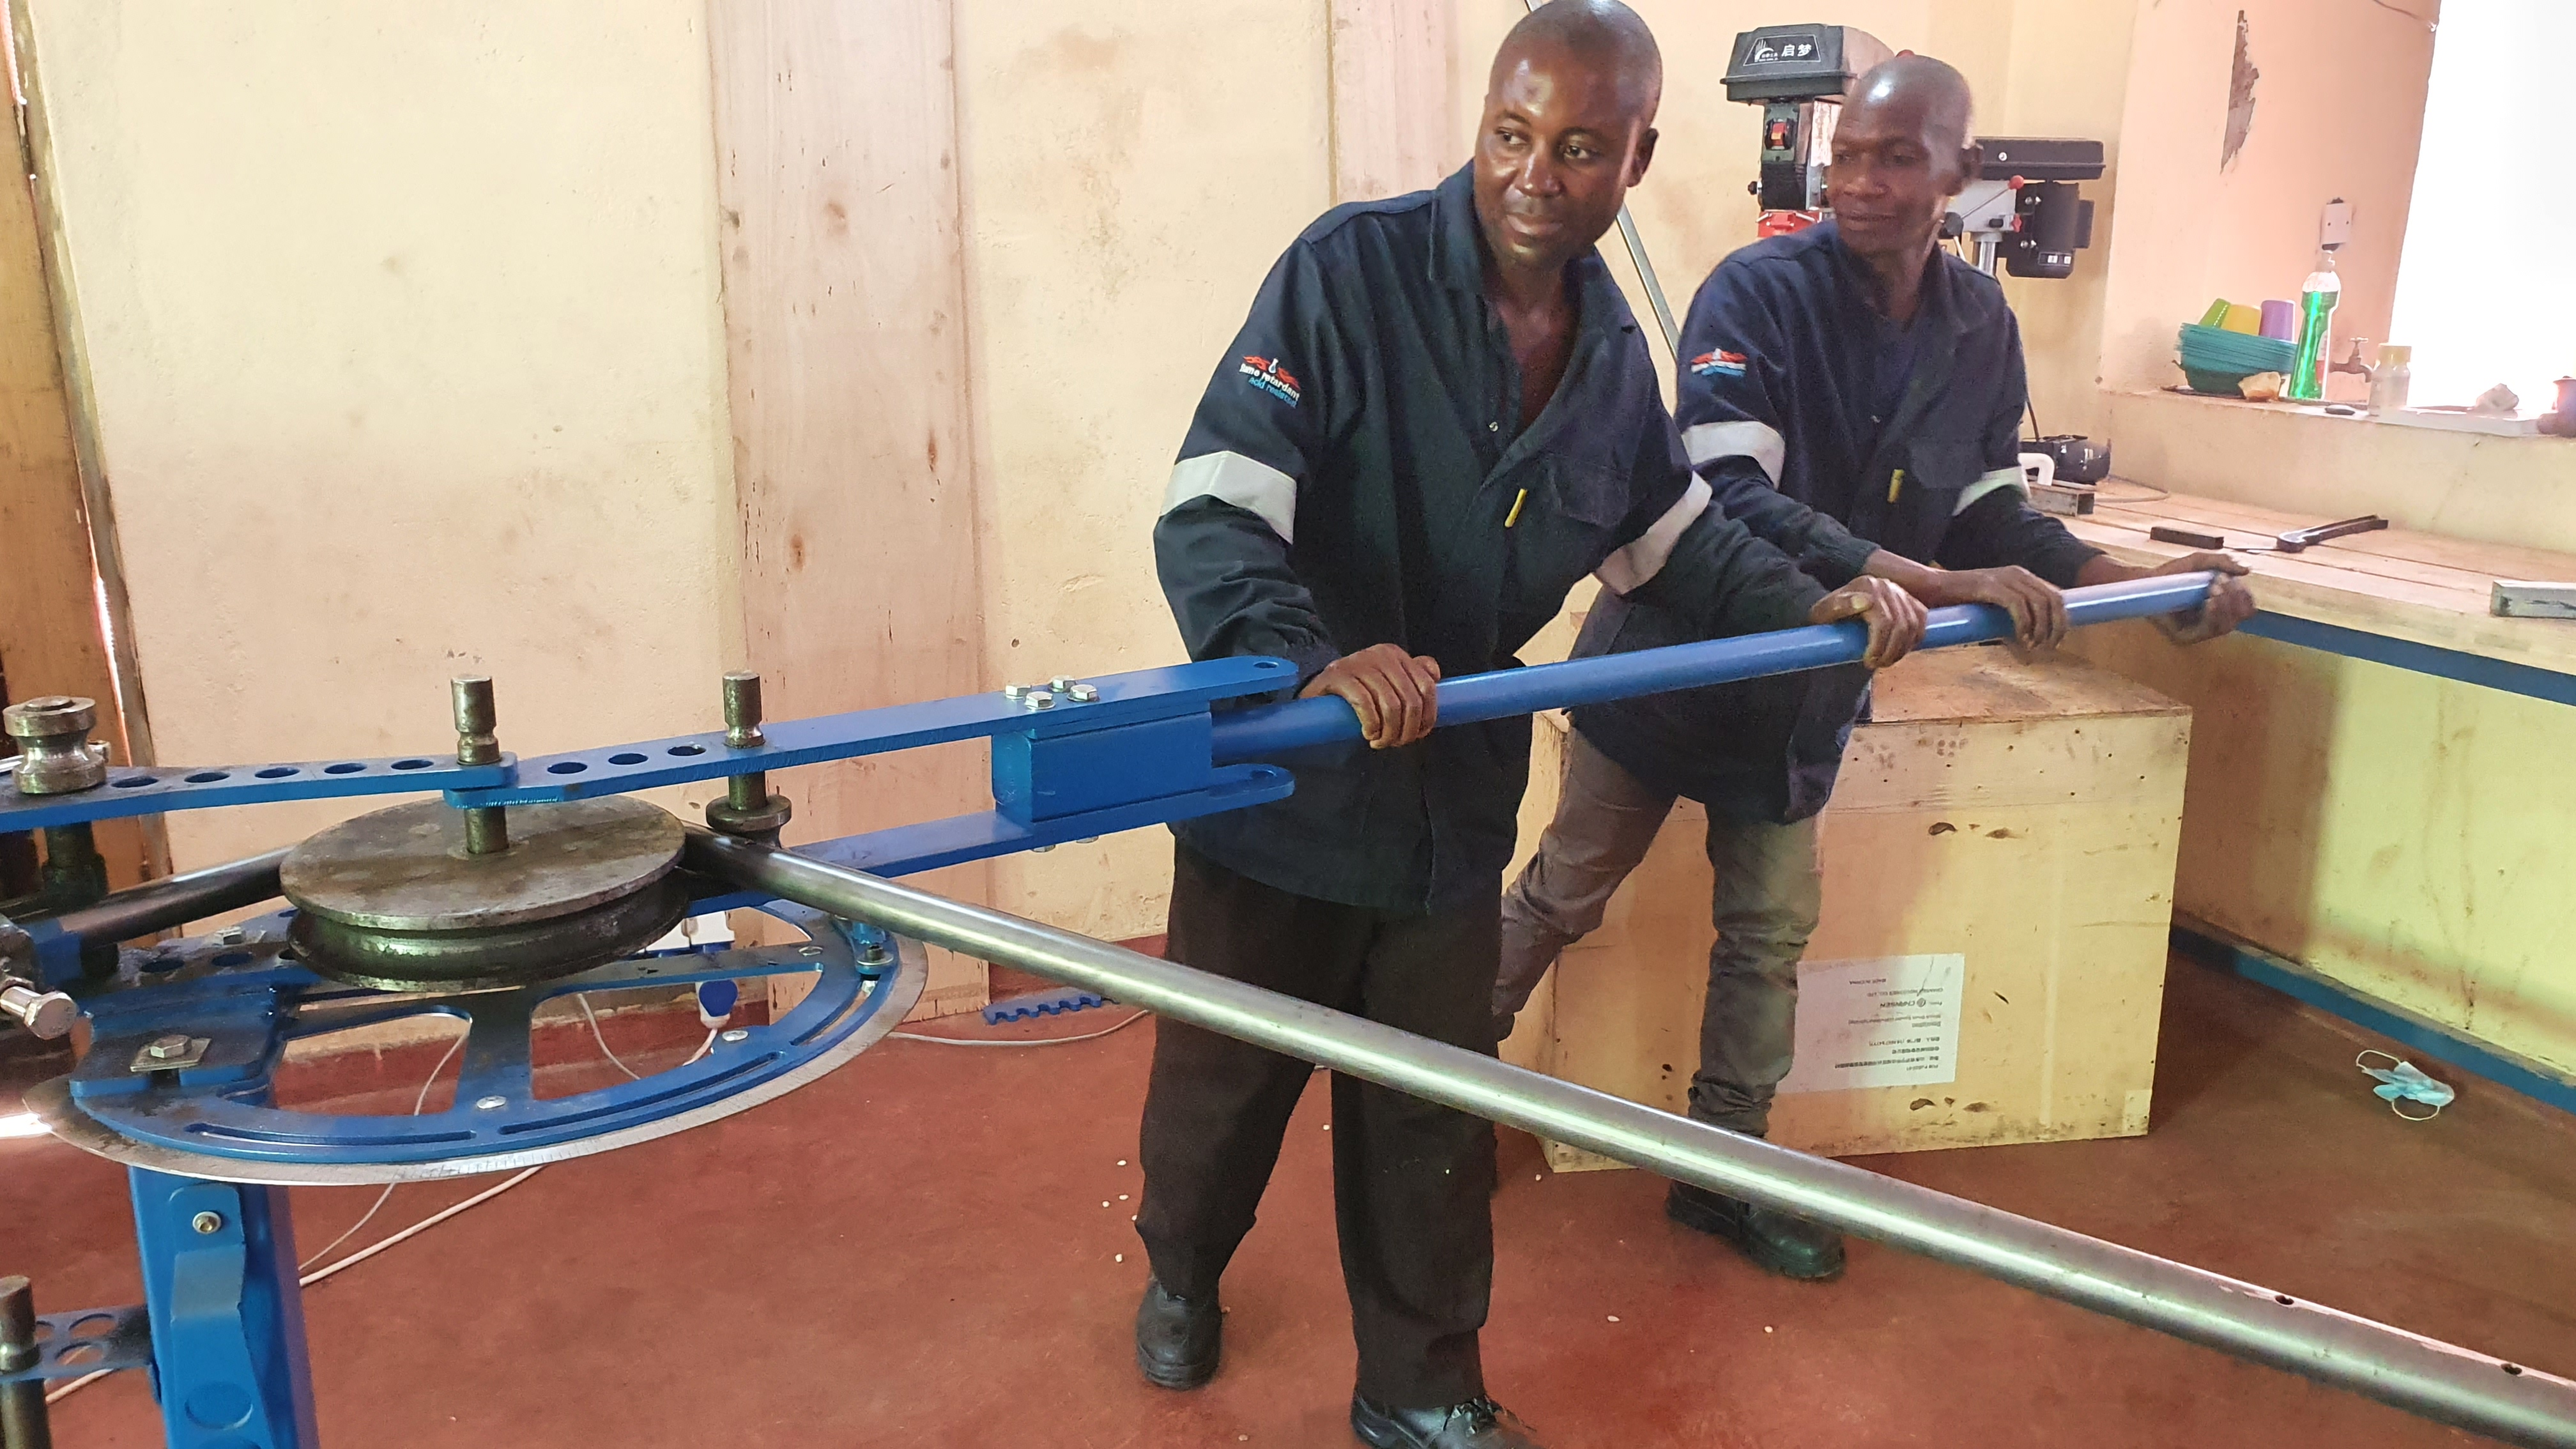 Mr. Bright Chome and Jimmy, working on the steel tube bending machine.